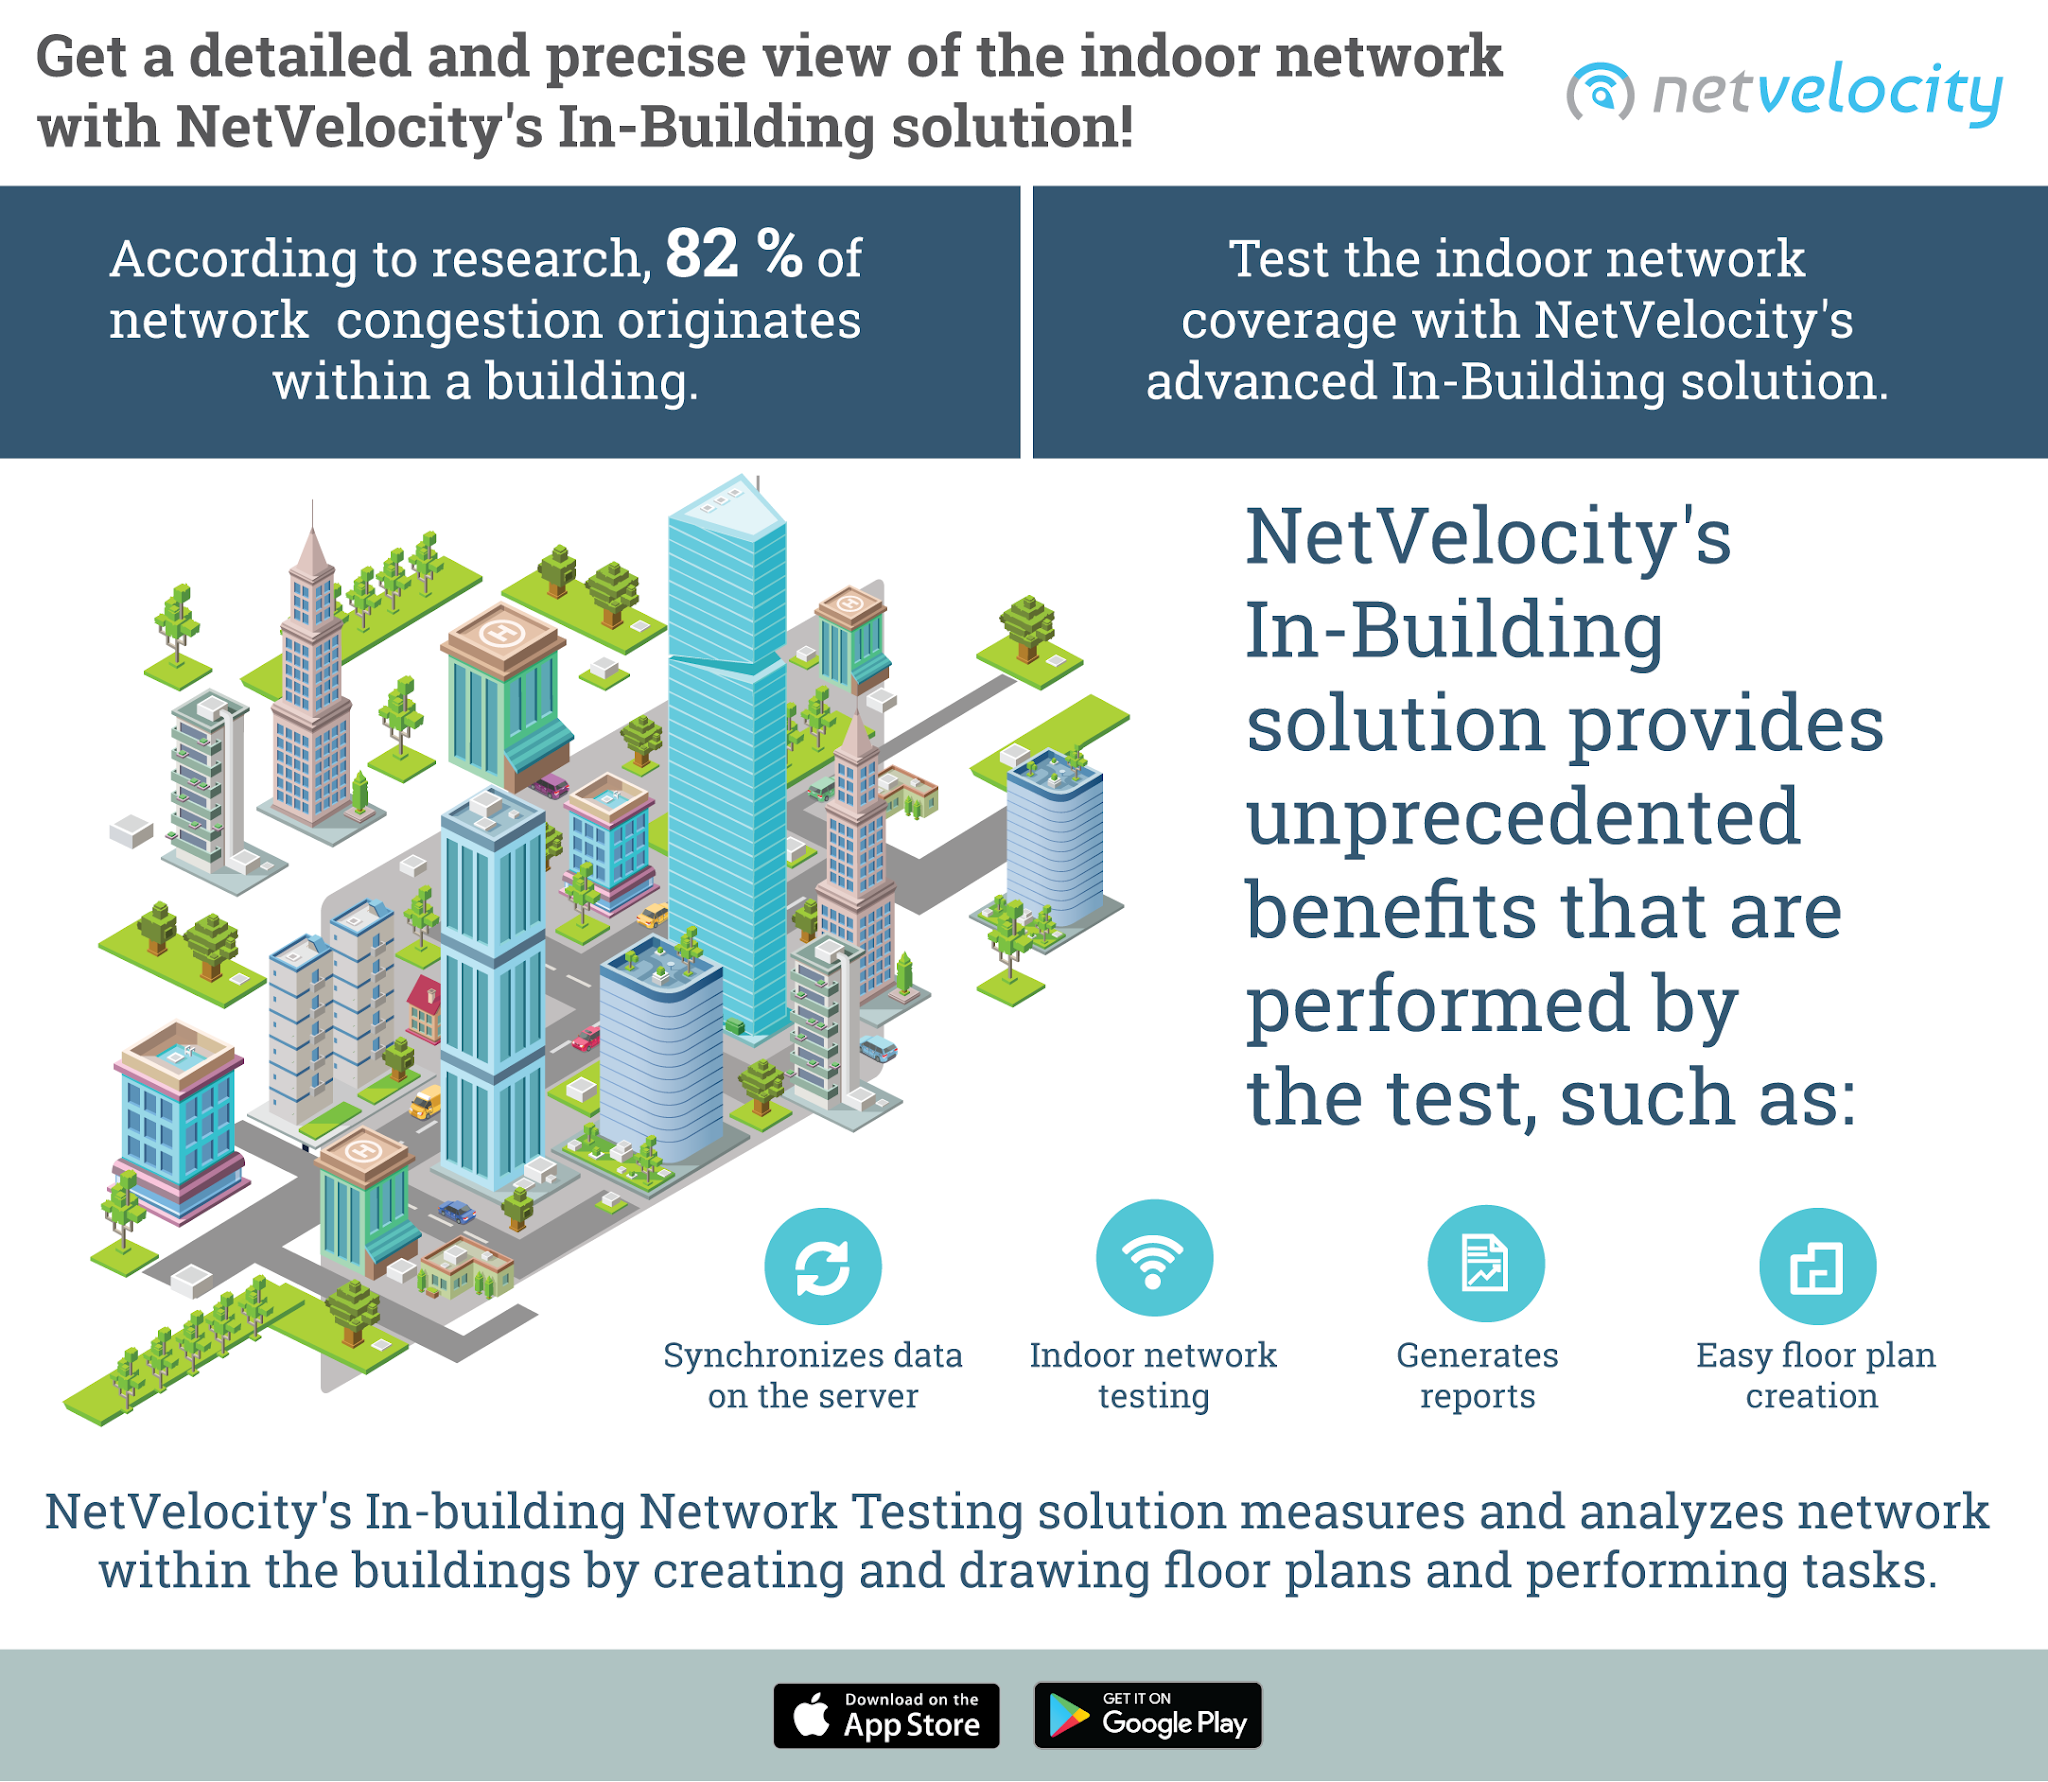 In-Building network testing